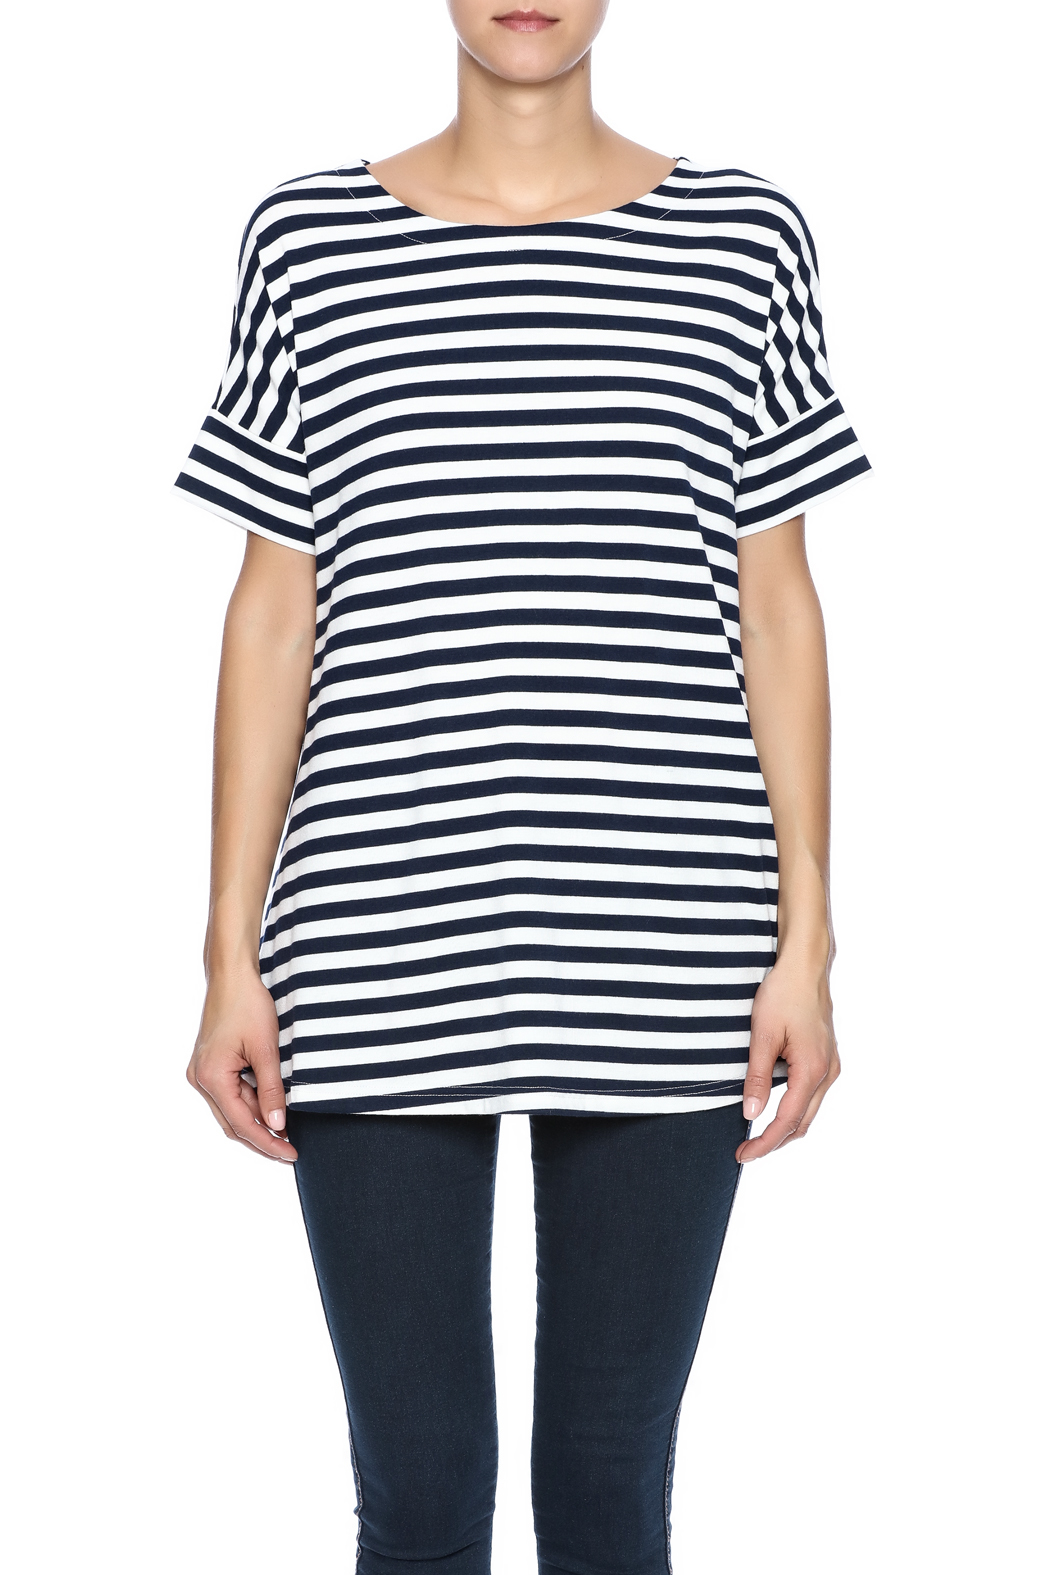 Simply Noelle Nautical Striped Tunic - Side Cropped Image